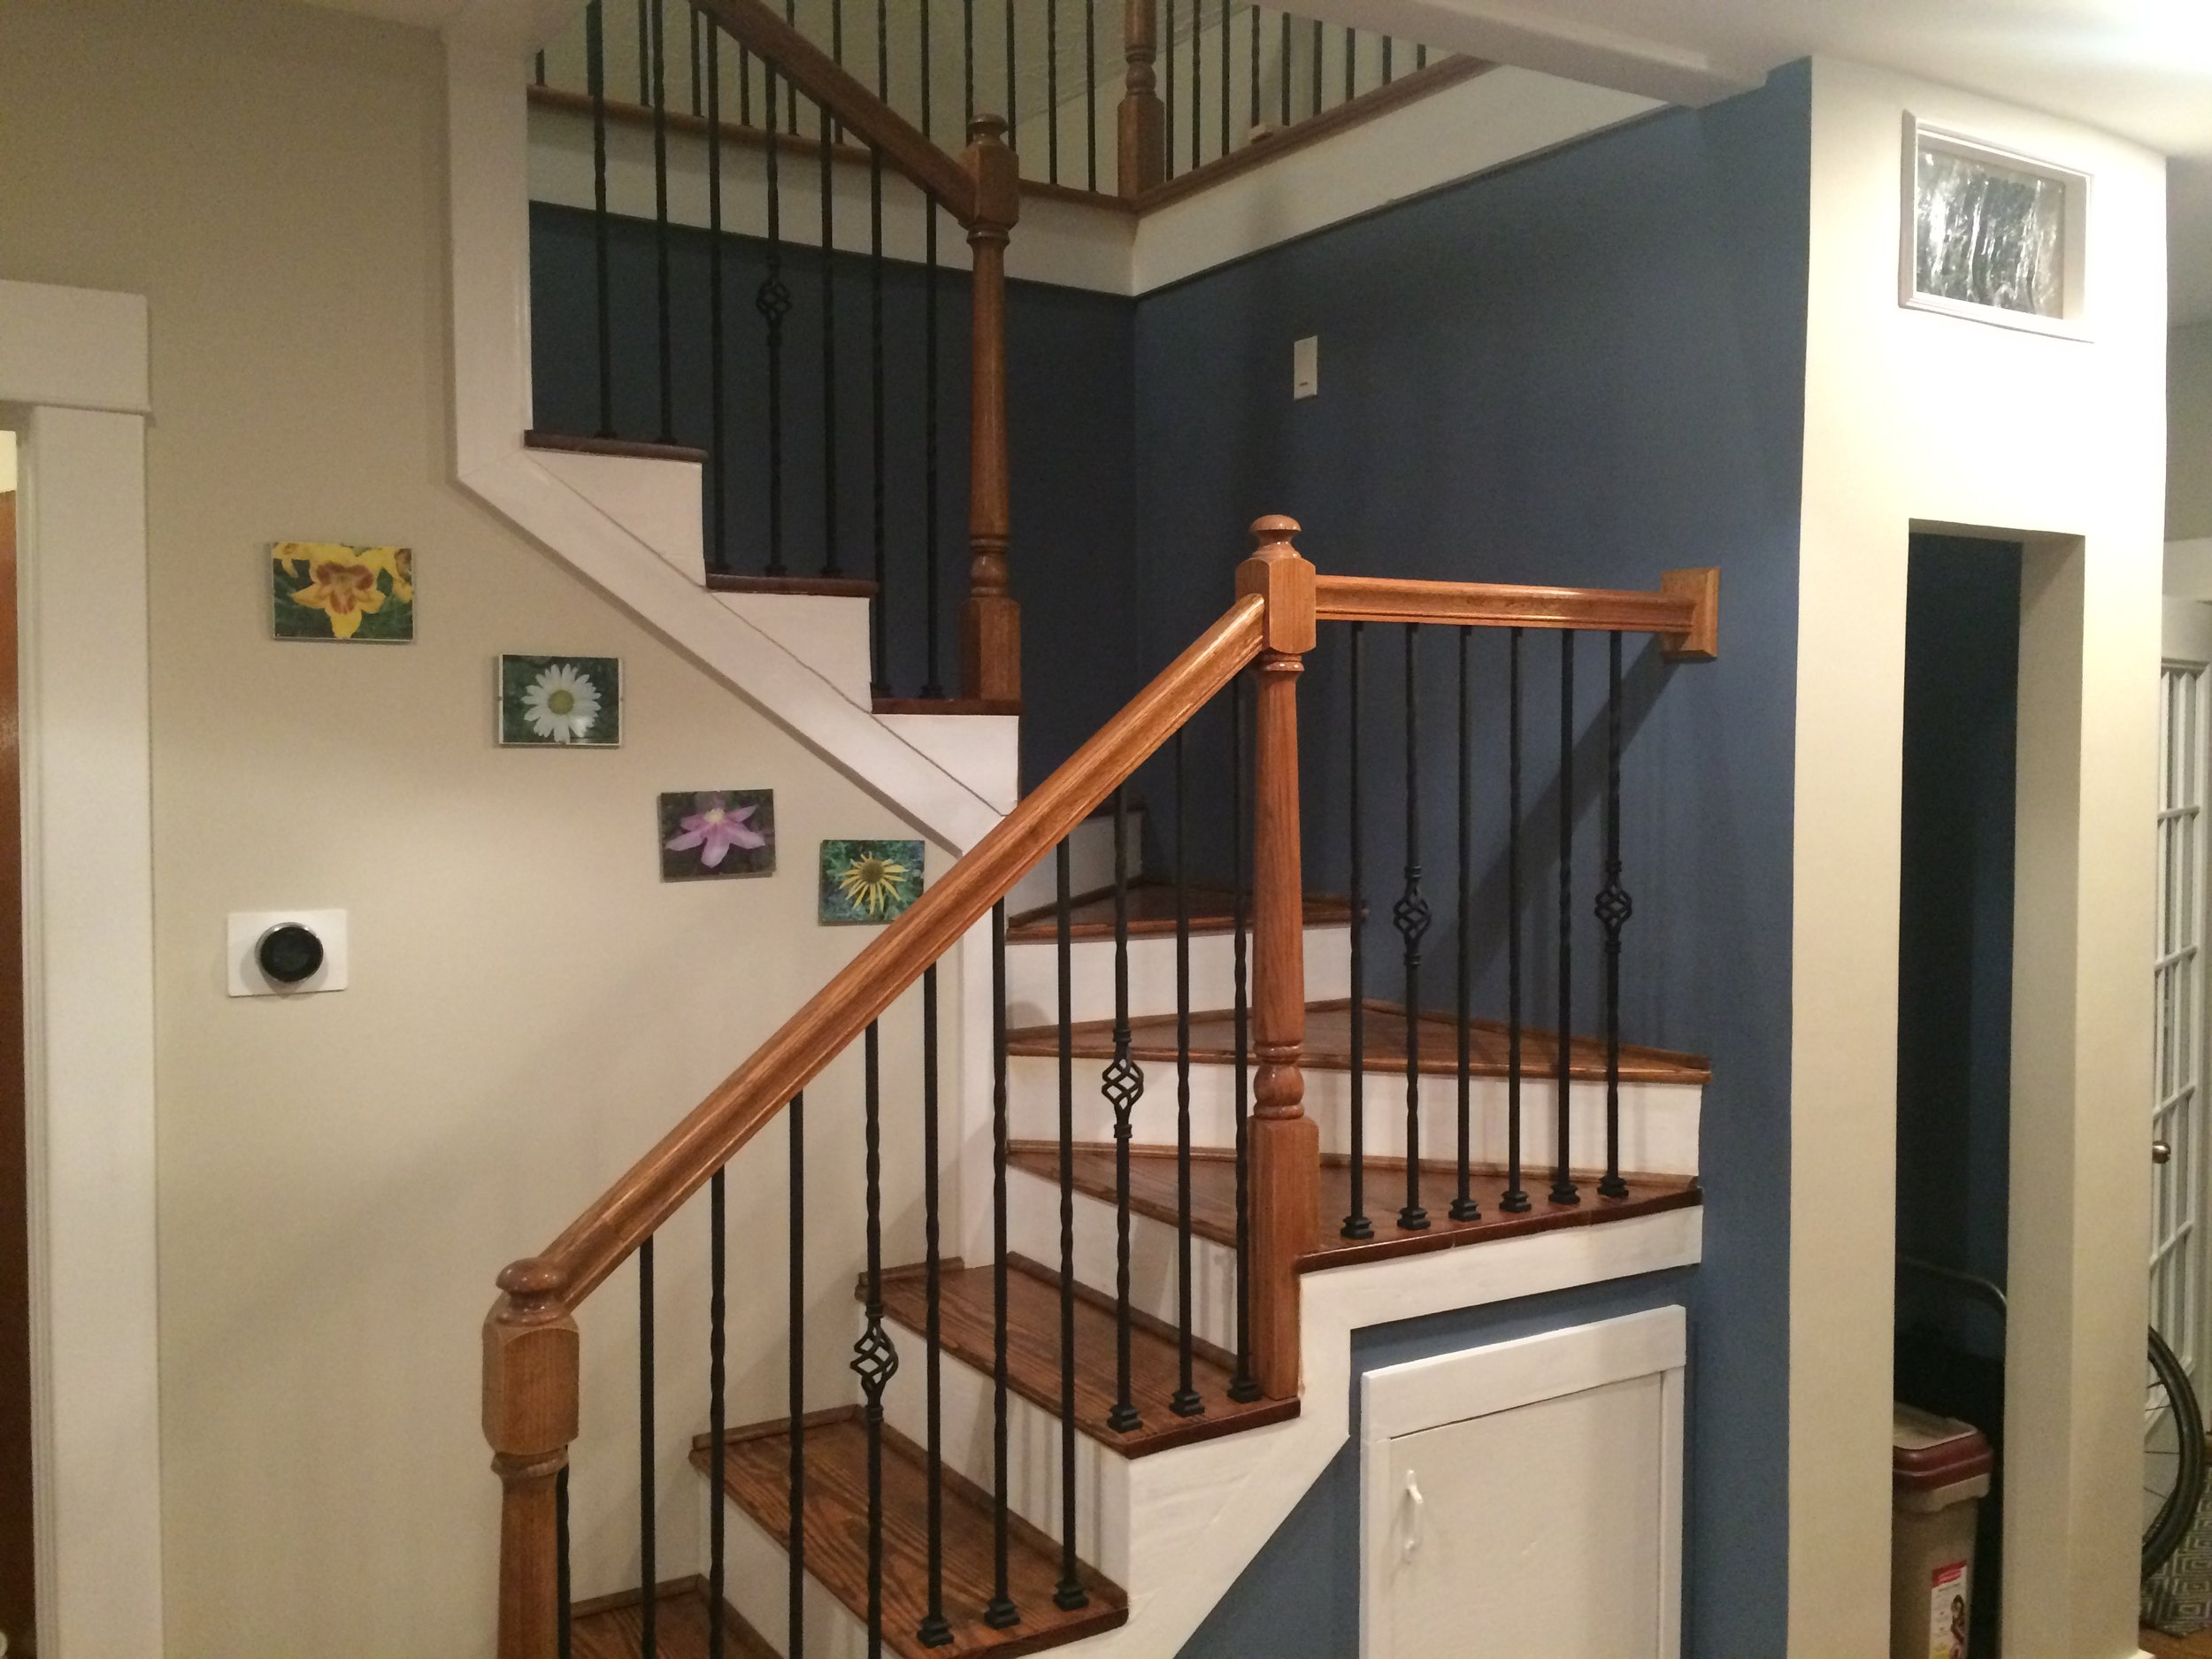 Services - Services include but are not limited to:PaintingDrywall repair/Plaster repairAccent wallsFaux Finishes/Venetian PlasterPaint StrippingWood RefinishingBathroom and Kitchen cabinet refinishingBathroom and Kitchen tileFurniture refinishing